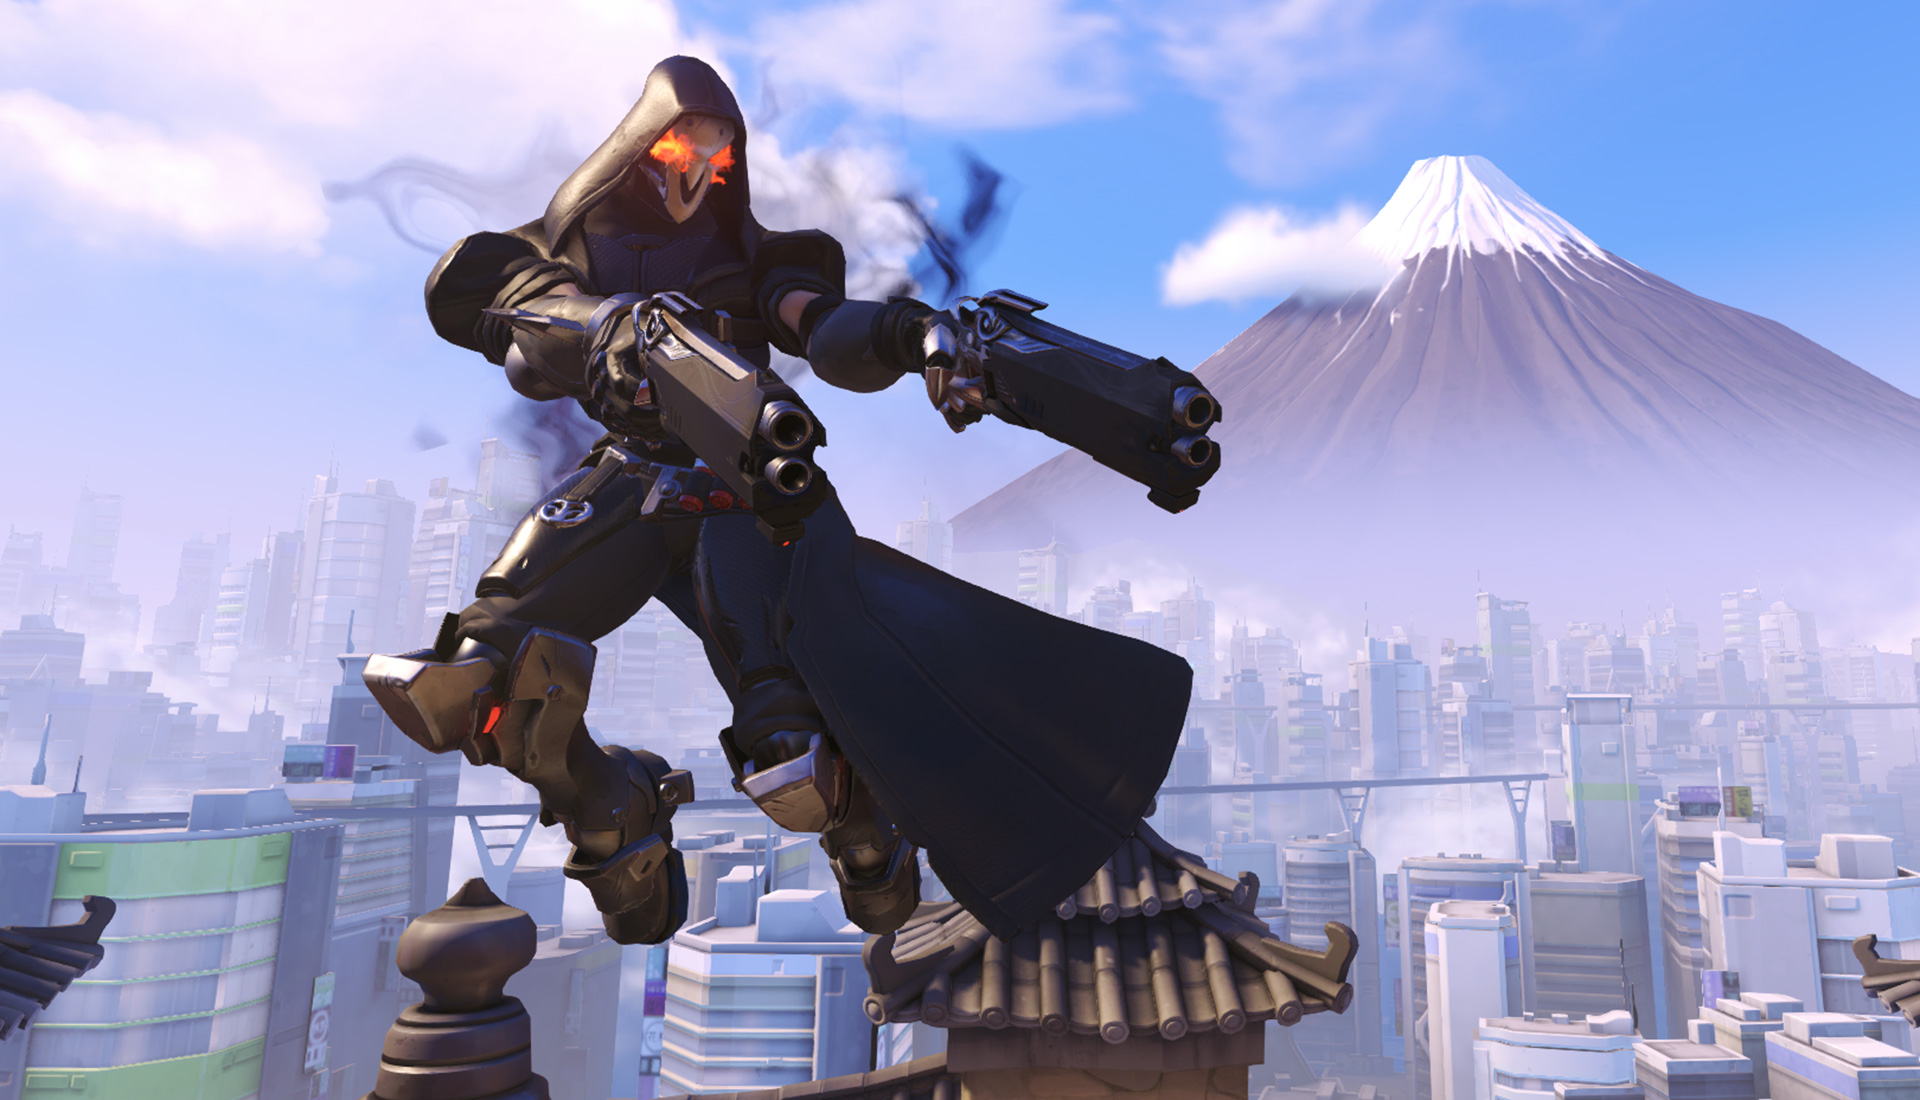 Reasons why teamwork is really important in 'Overwatch'